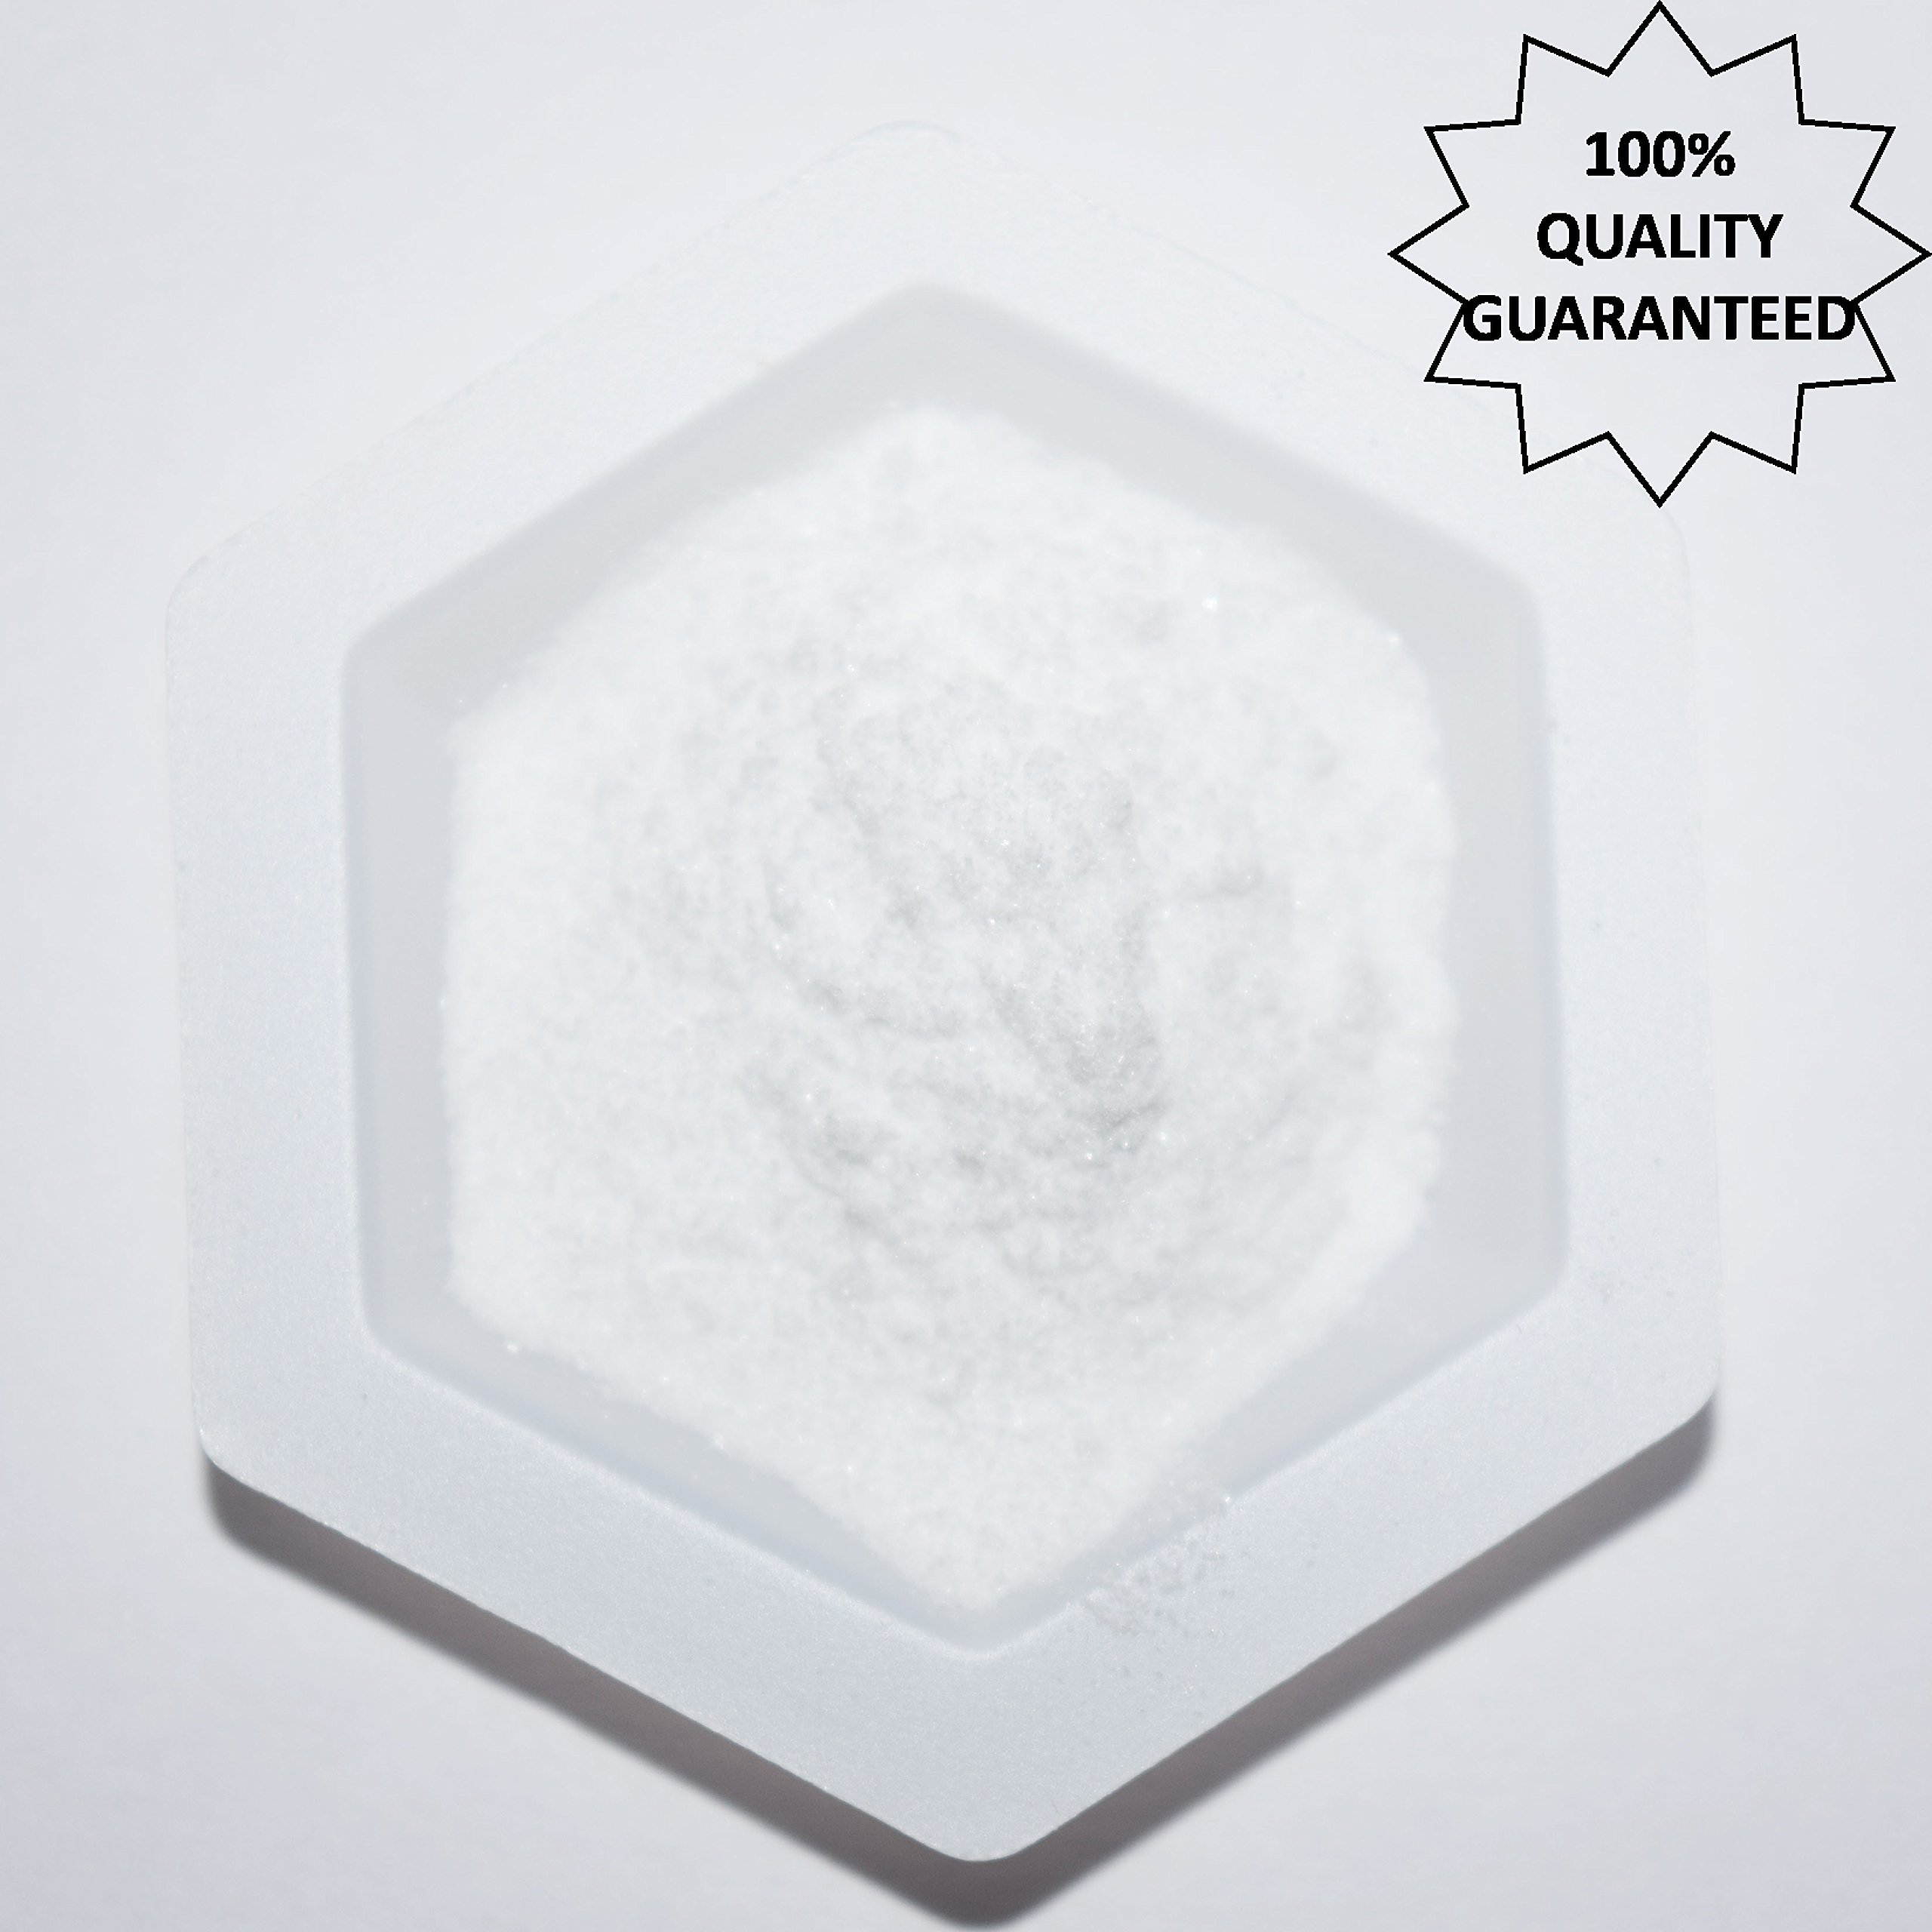 Pure Alpha-Arbutin Powder, 100 grams, Quality Guaranteed! Good for Skin Lightening by L'eternel World (Image #3)